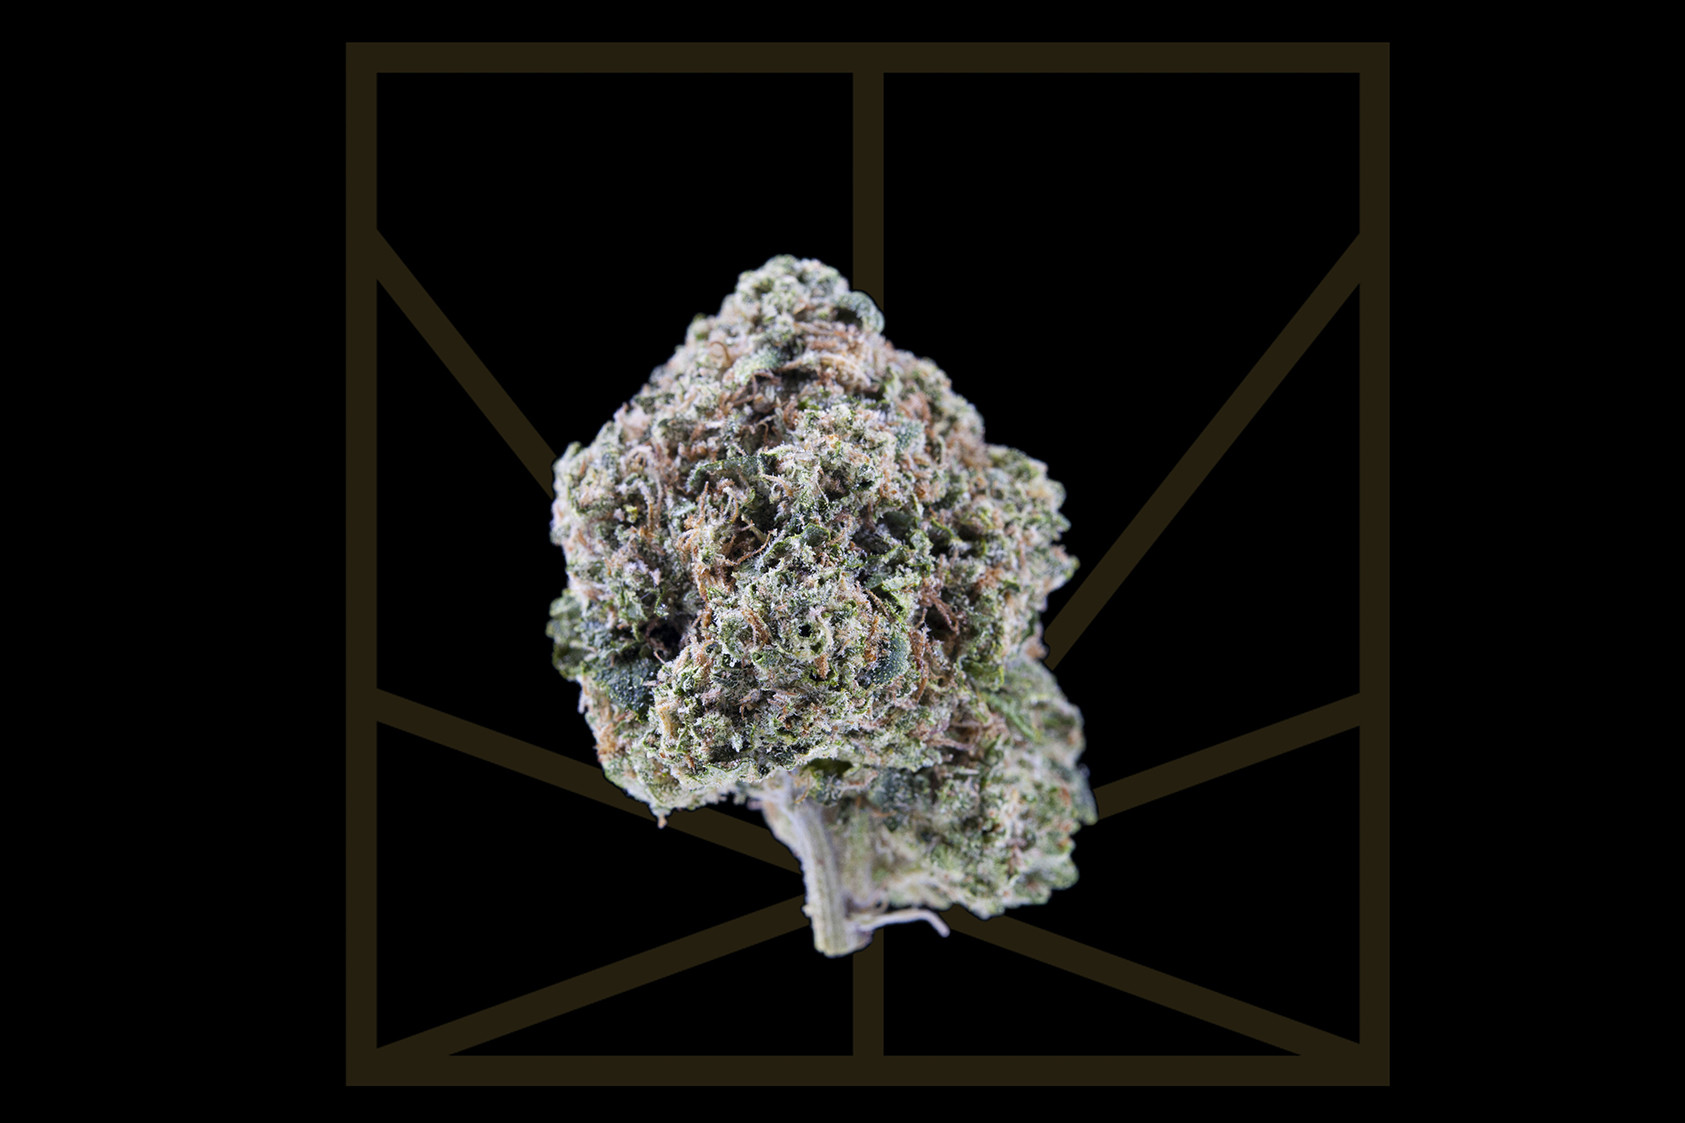 """<p><em>""""Can you roll this blunt for me? / I'm just tryna smoke this weed / I spend all my life intoxicated.""""</em></p>  <p>Fire OG has major bag appeal. This is a classic OG with a lemon and pine scent that almost makes you feel """"Intoxicated"""" before you ever take a hit. These dense buds are covered in trichomes and have bright red hairs - Fire OG's flames - all over. Once you take a hit, the balanced effects of this hybrid come on fast. Fire OG is a cross between knockout indica San Fernando Valley OG Kush and hybrid OG Kush that relaxes the body and stimulates creativity. This is a happy yet sleepy high that uplifts the mood but weighs down the eyelids.</p>"""